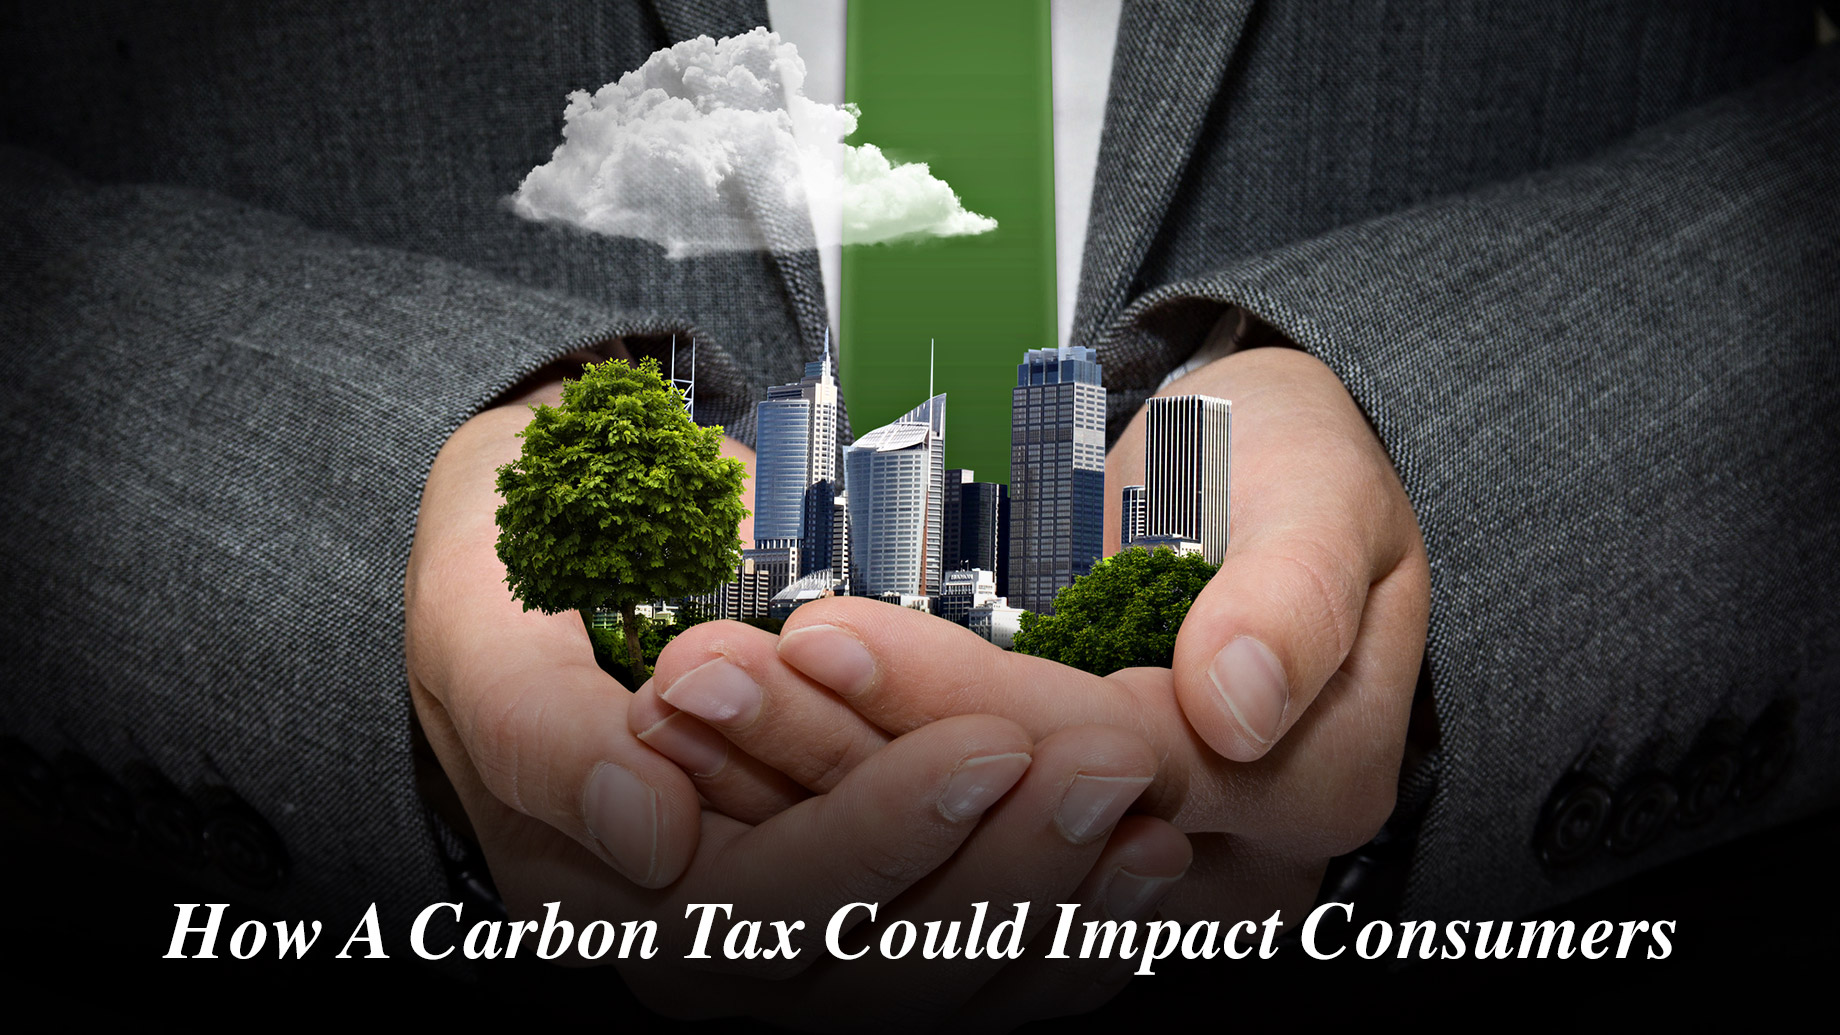 How A Carbon Tax Could Impact Consumers